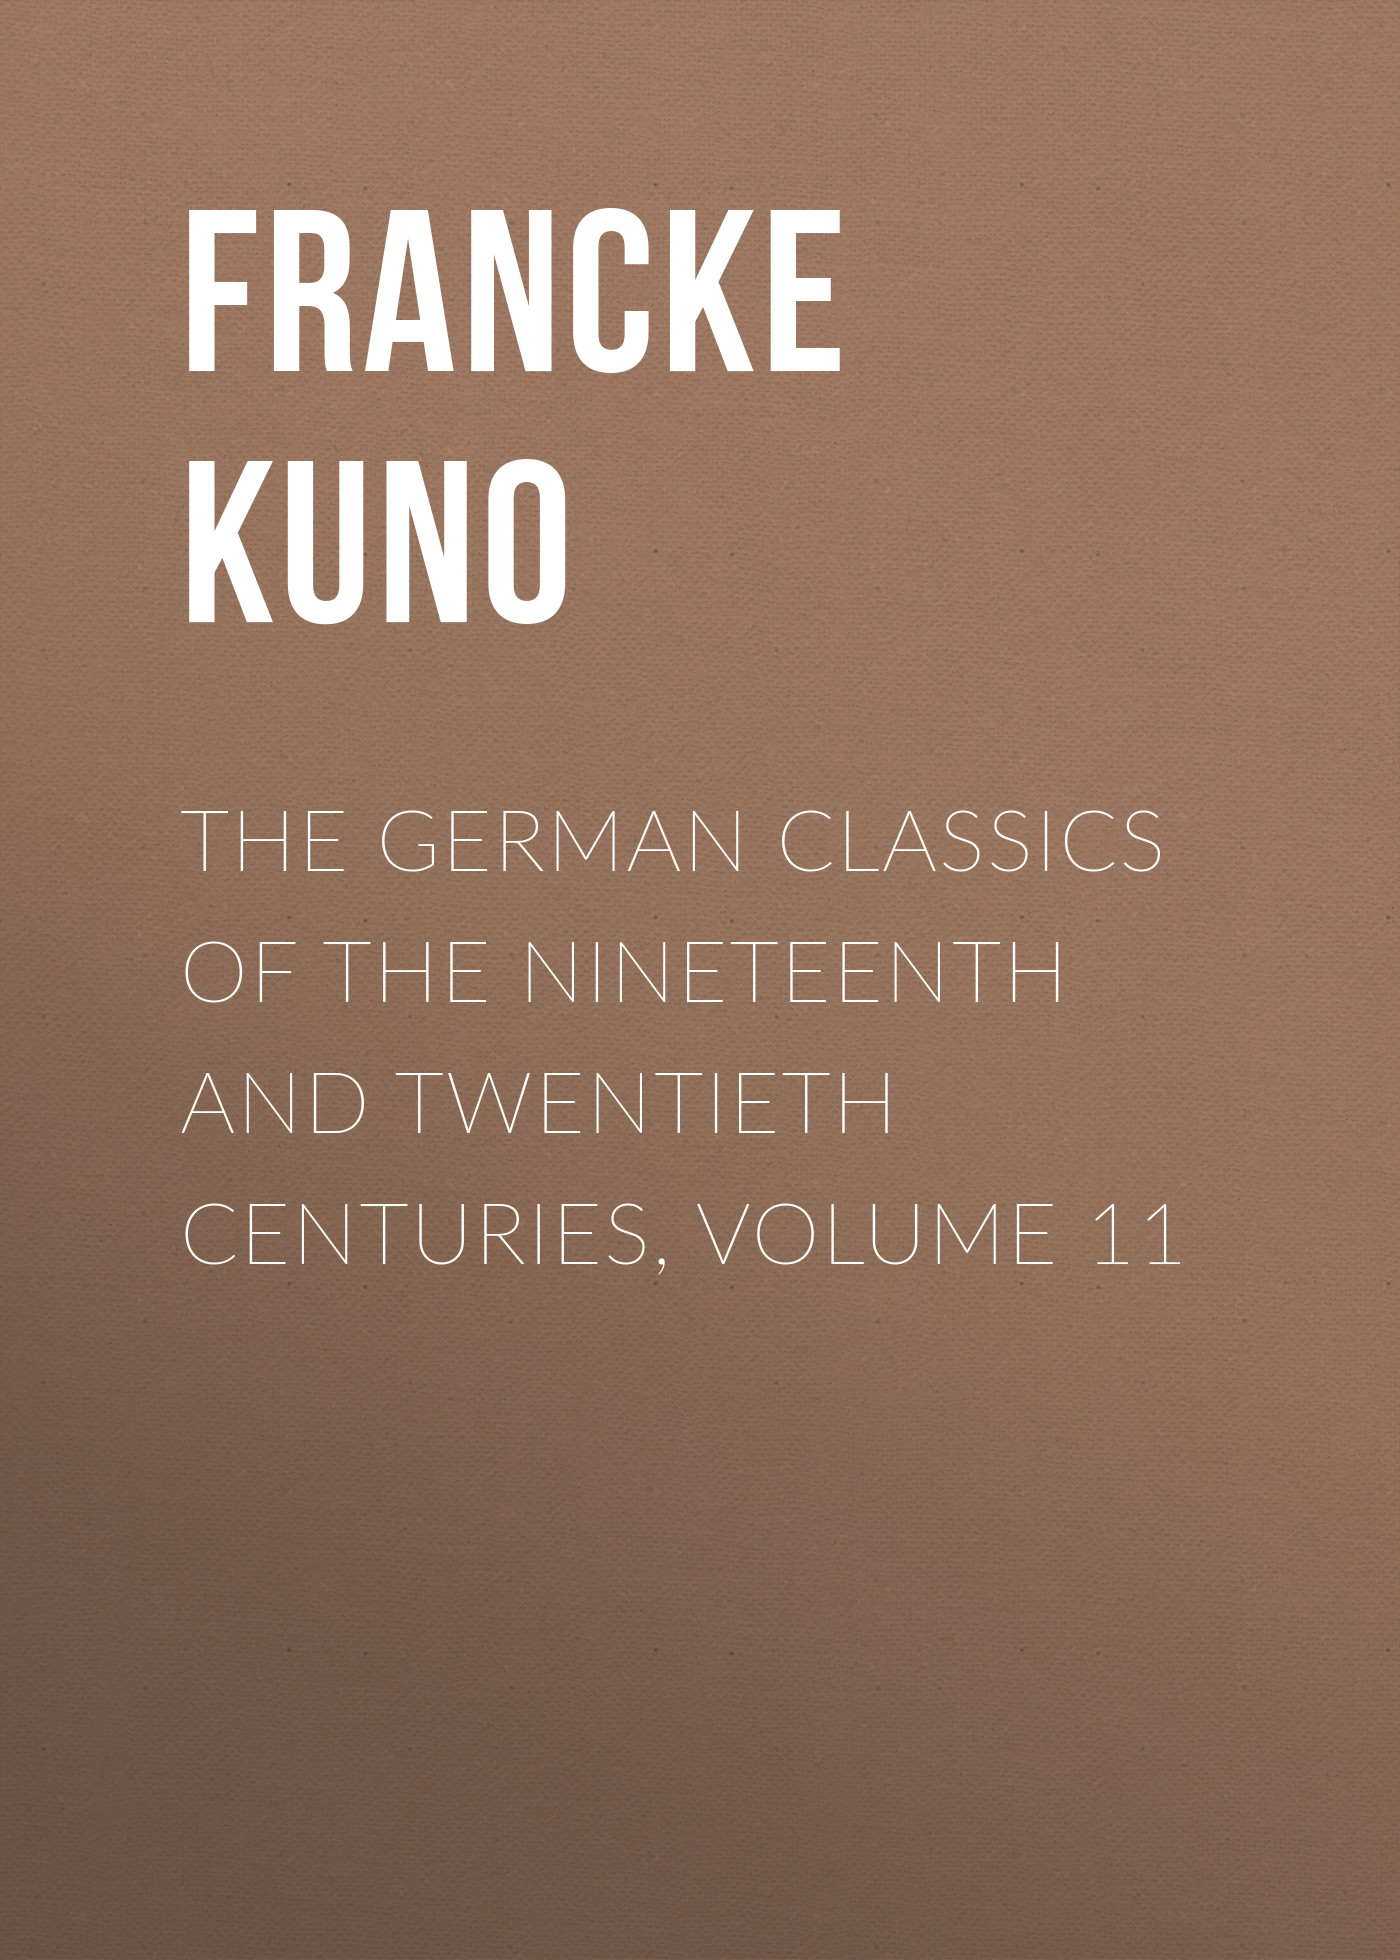 цена Francke Kuno The German Classics of the Nineteenth and Twentieth Centuries, Volume 11 онлайн в 2017 году